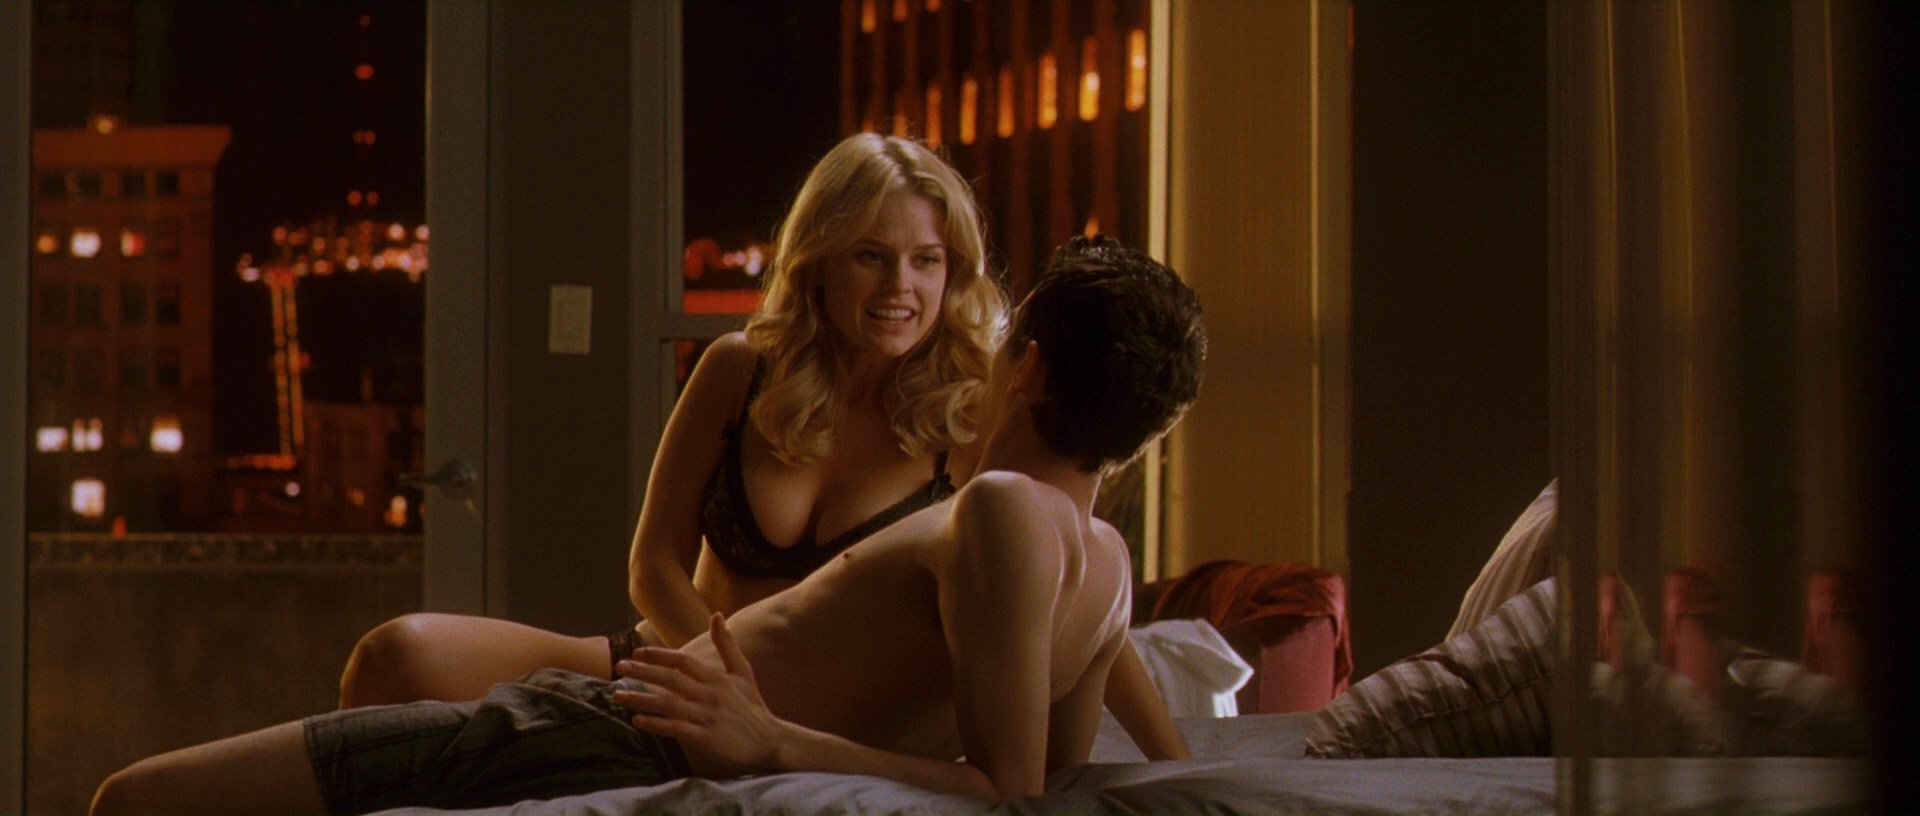 DOWNLOAD OR WATCH ONLINE. Alice Eve sexy ...